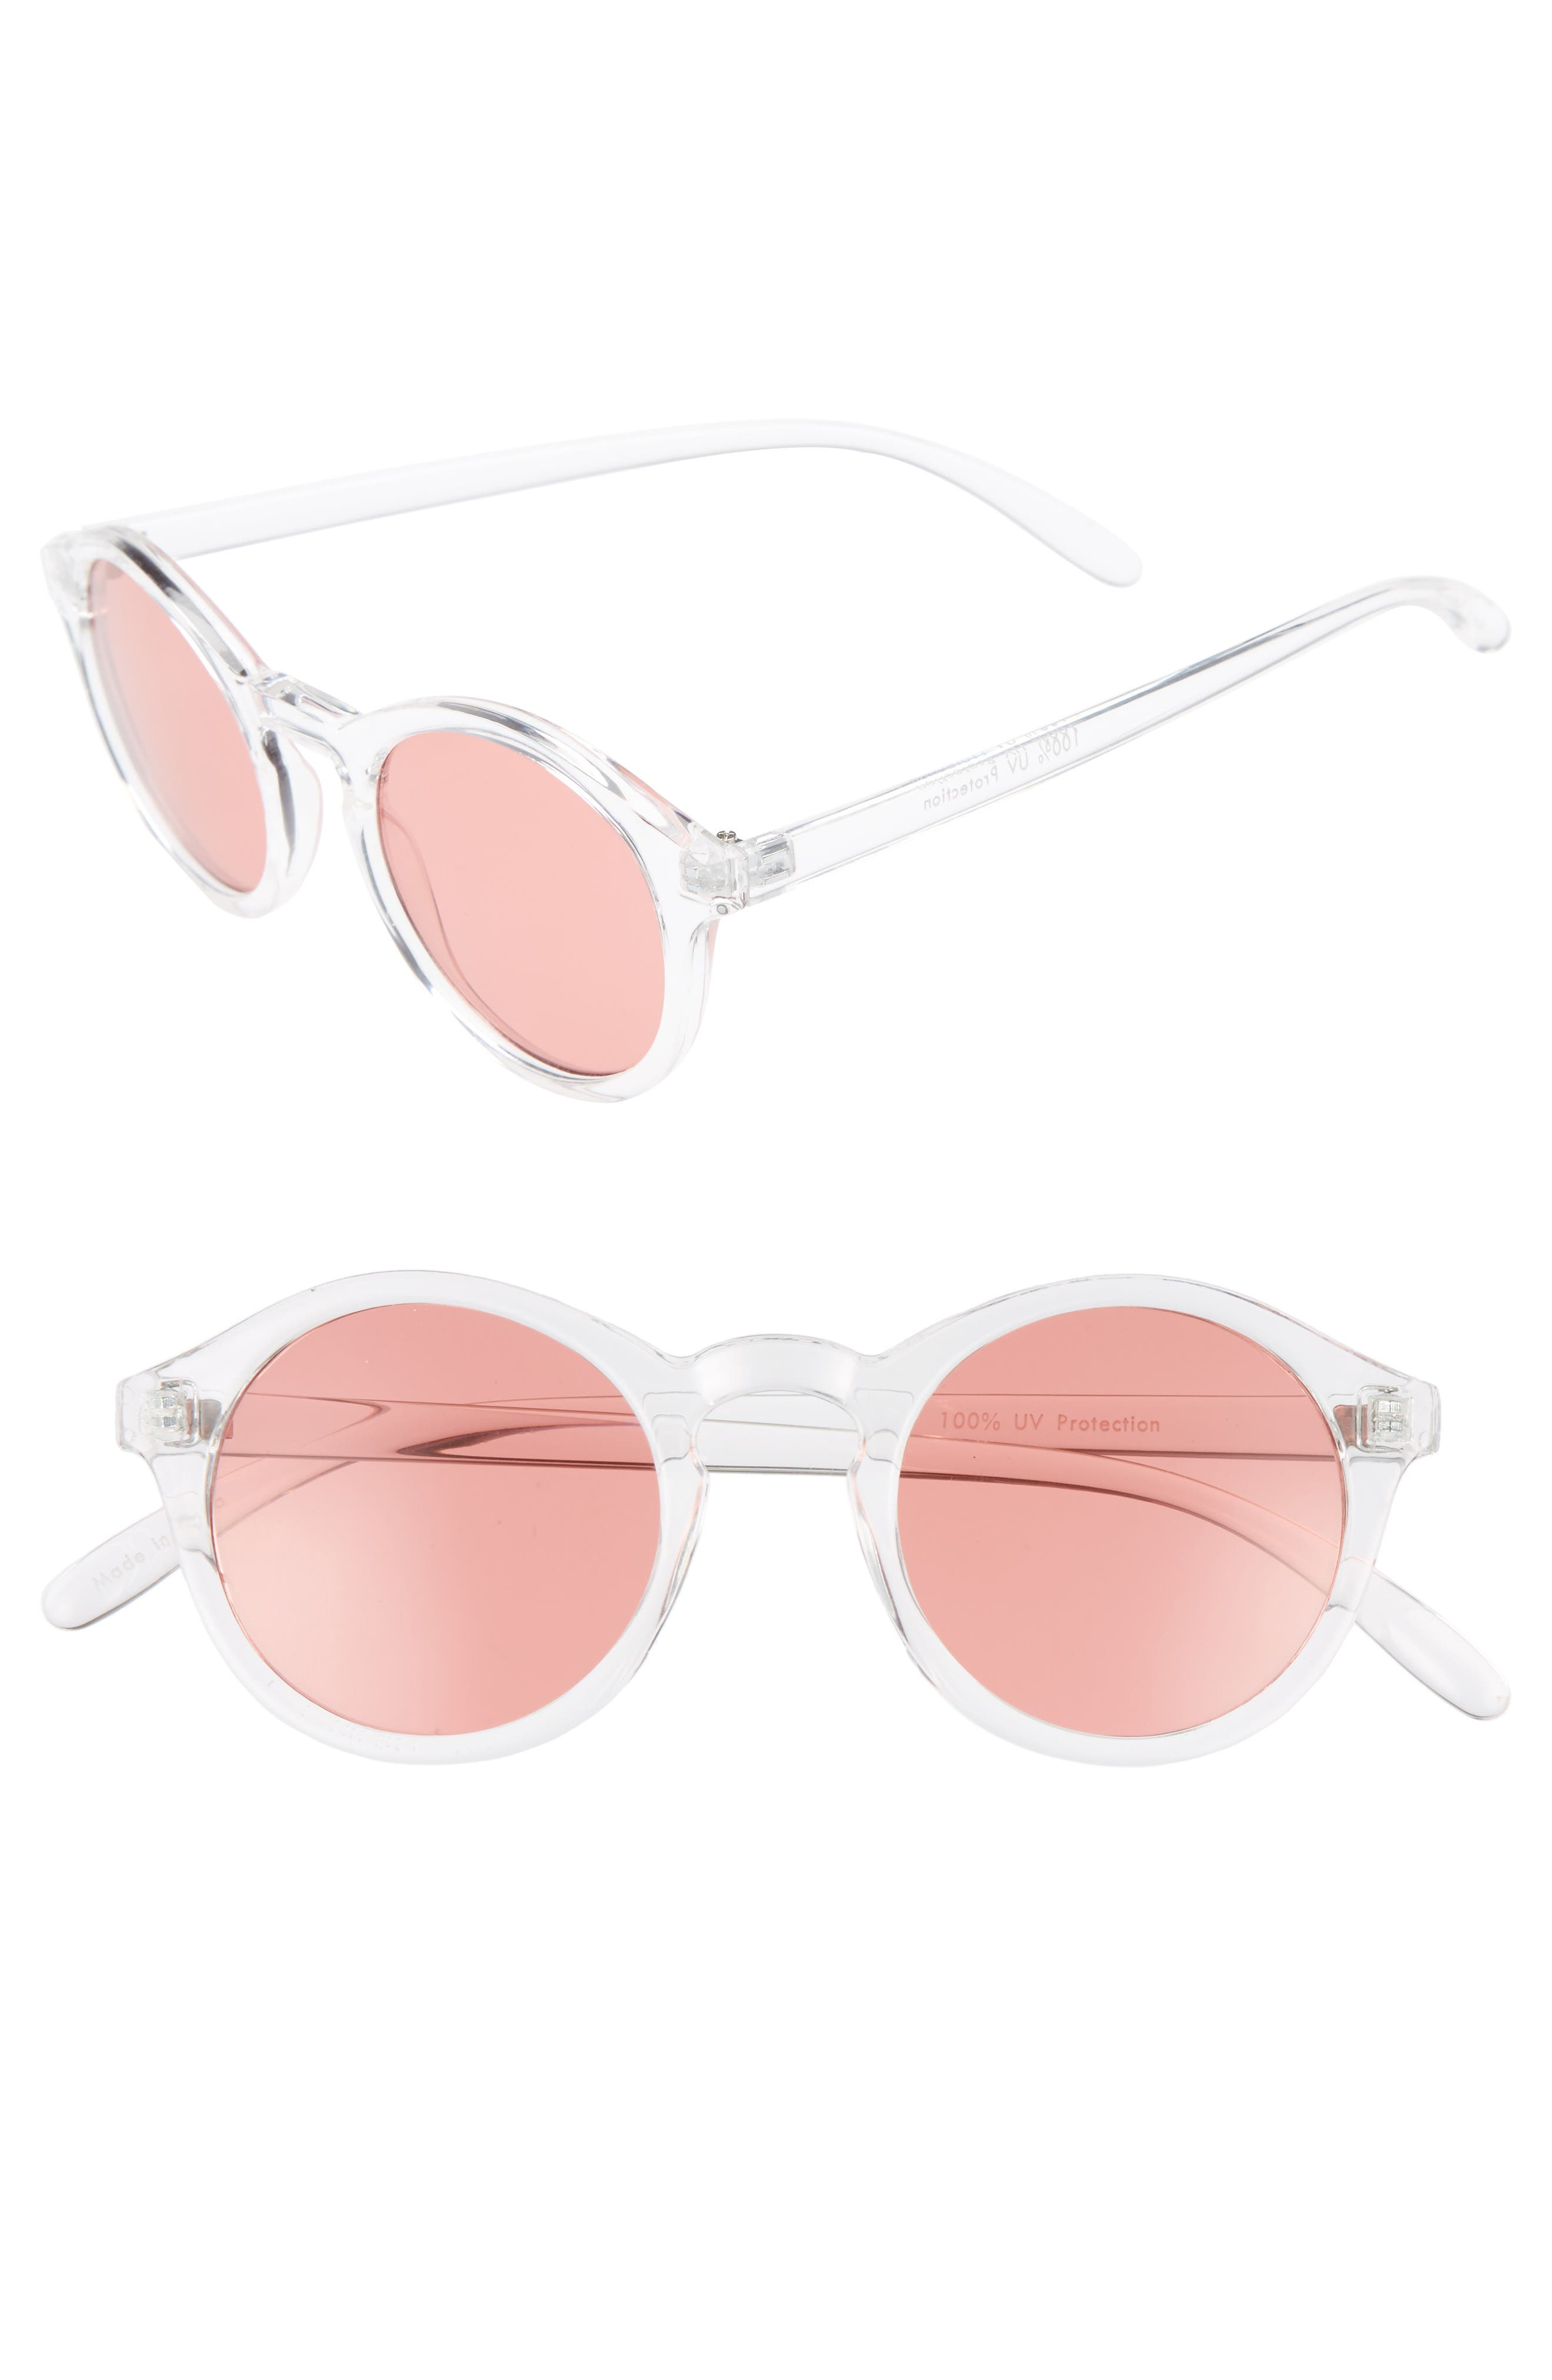 45mm Clear Plastic Small Round Sunglasses,                         Main,                         color, Clear/ Red